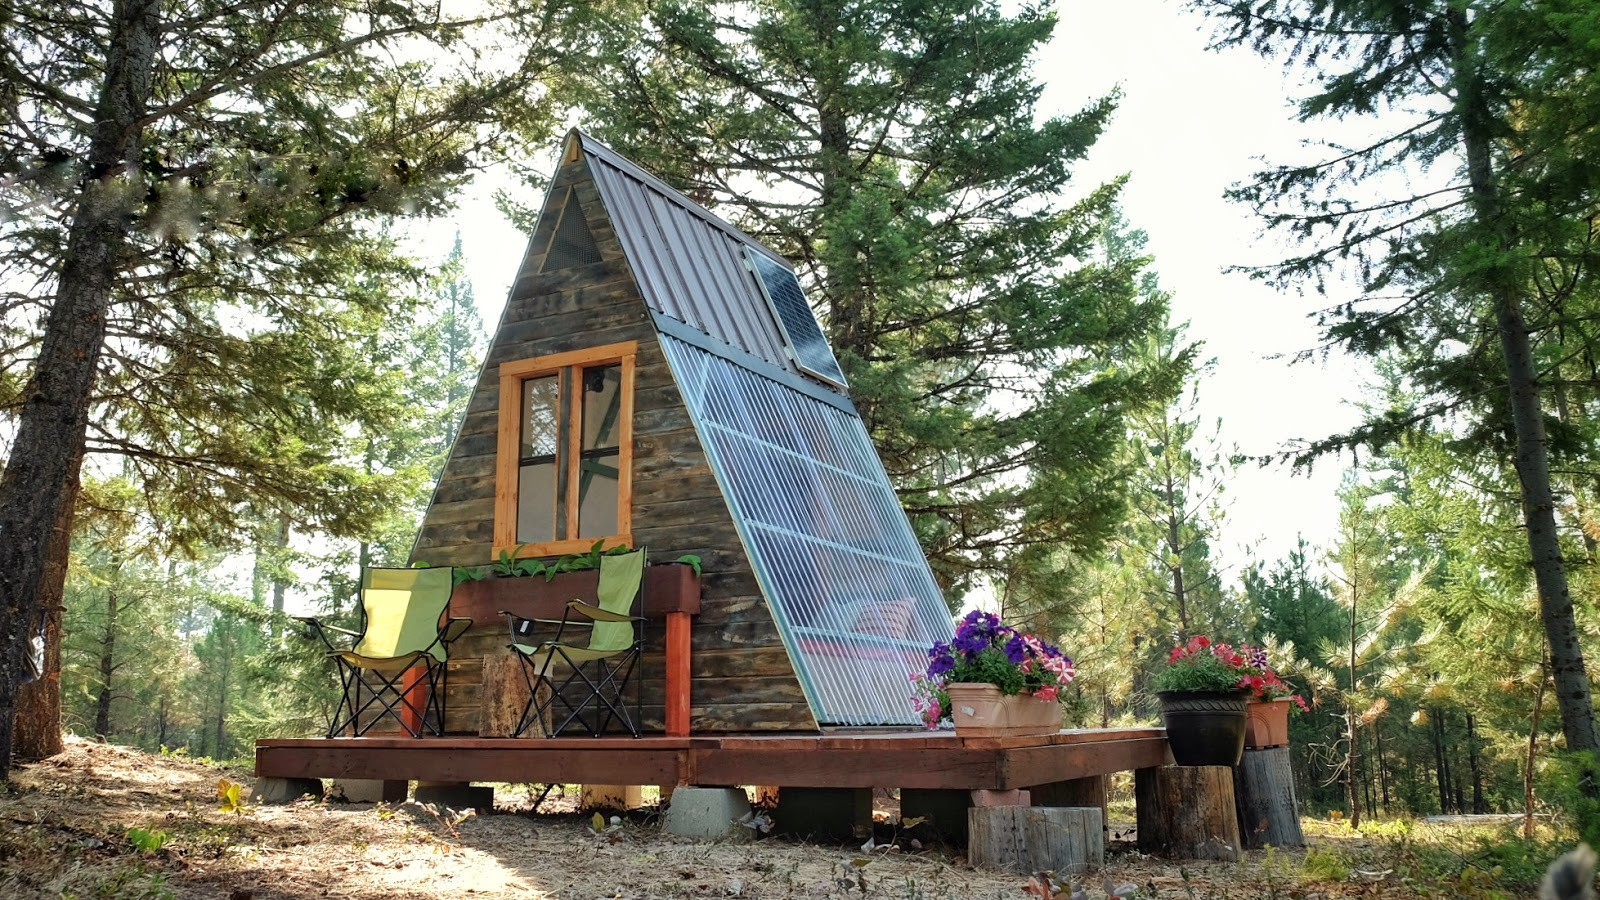 Tiny house town a frame cabin that cost just 700 to build for Free small cabin plans with material list